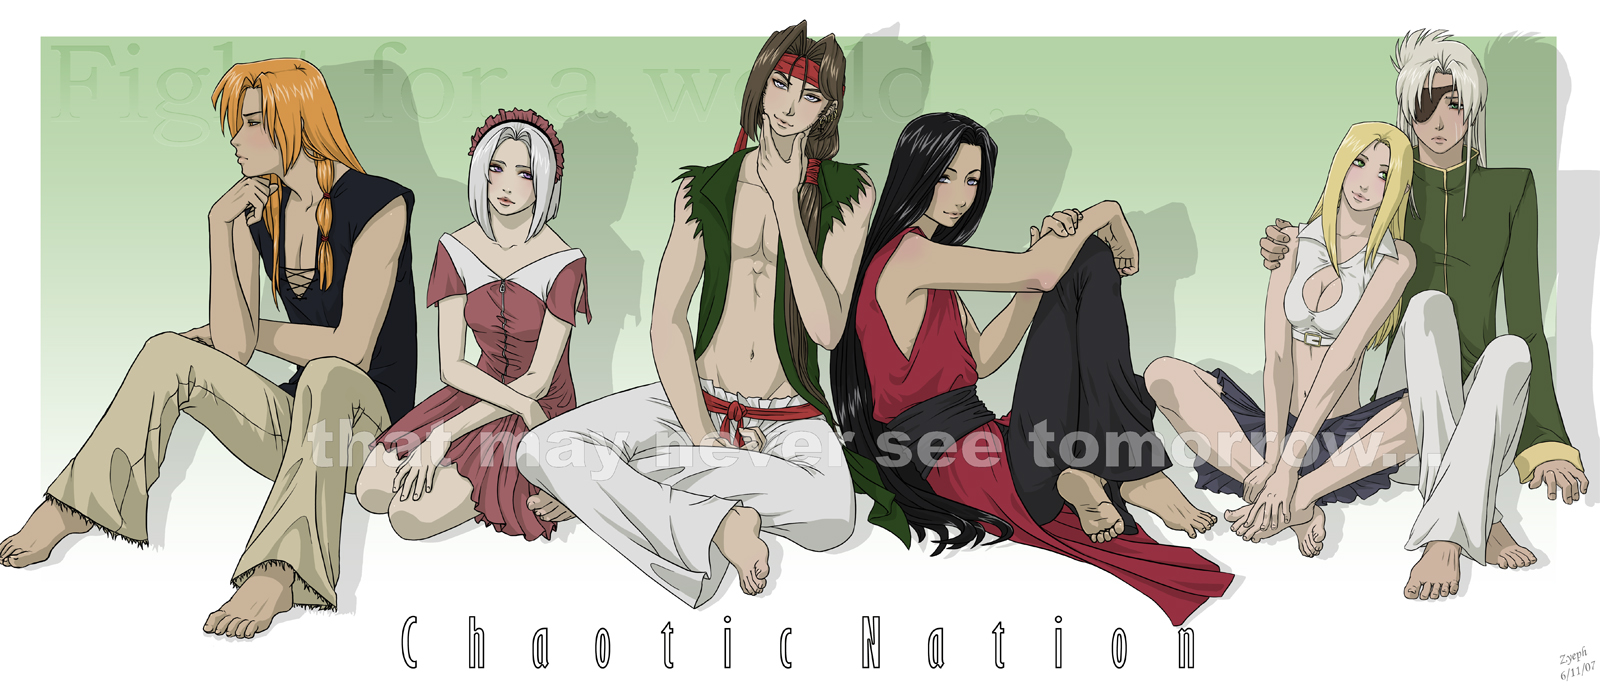 Anime Characters Born On February 7 : Chaotic nation characters by zyephens insanity on deviantart